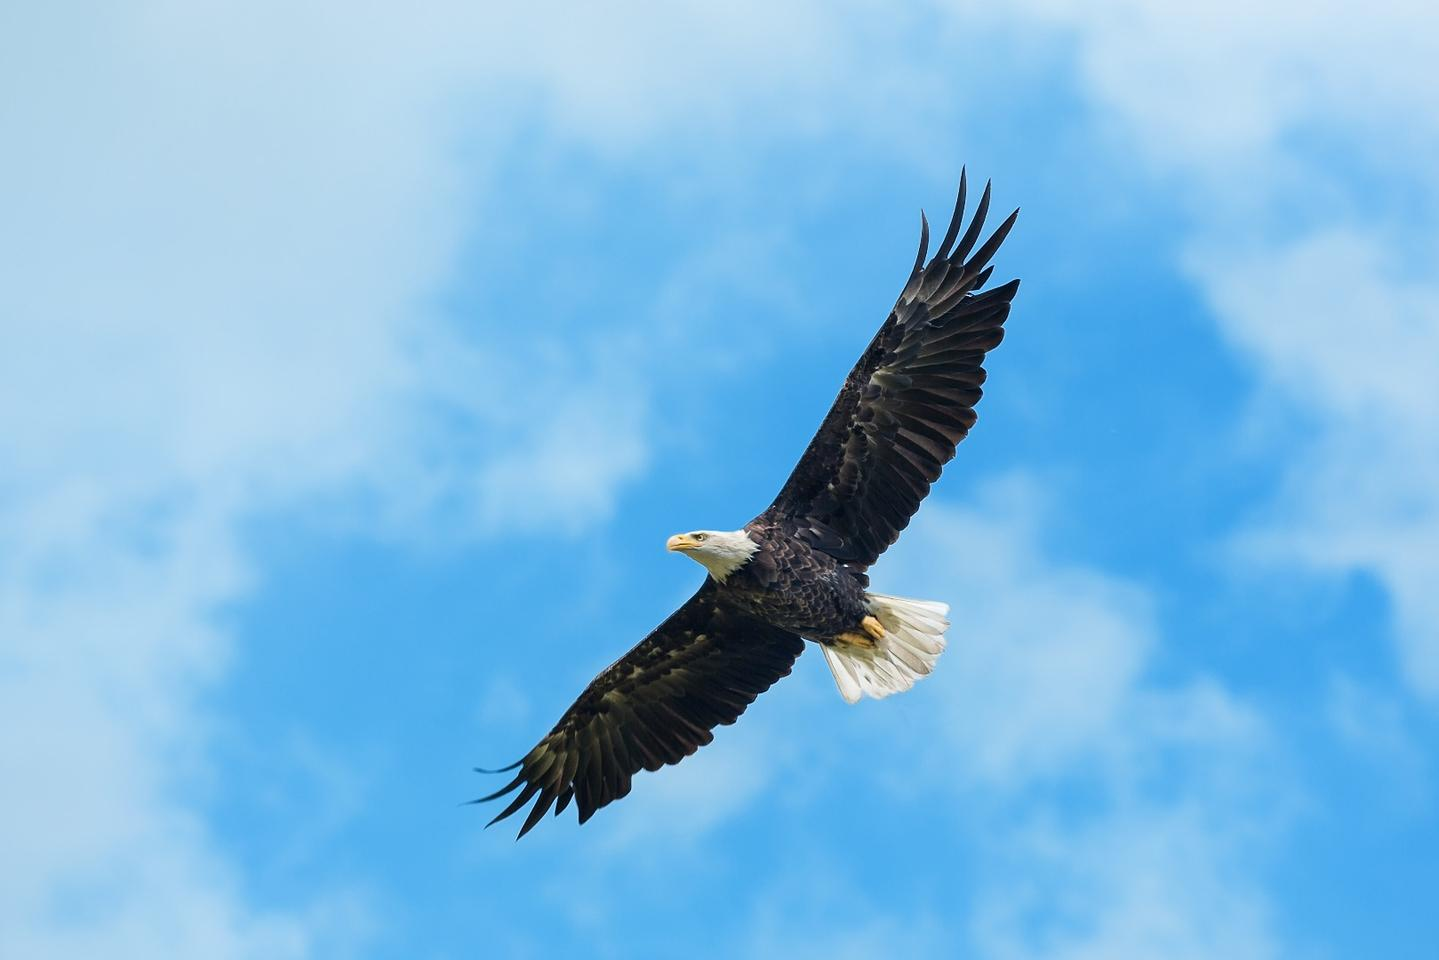 According to the US Fish and Wildlife Service, there are roughly 143,000 bald eagles and 40,000 golden eagles in the United States